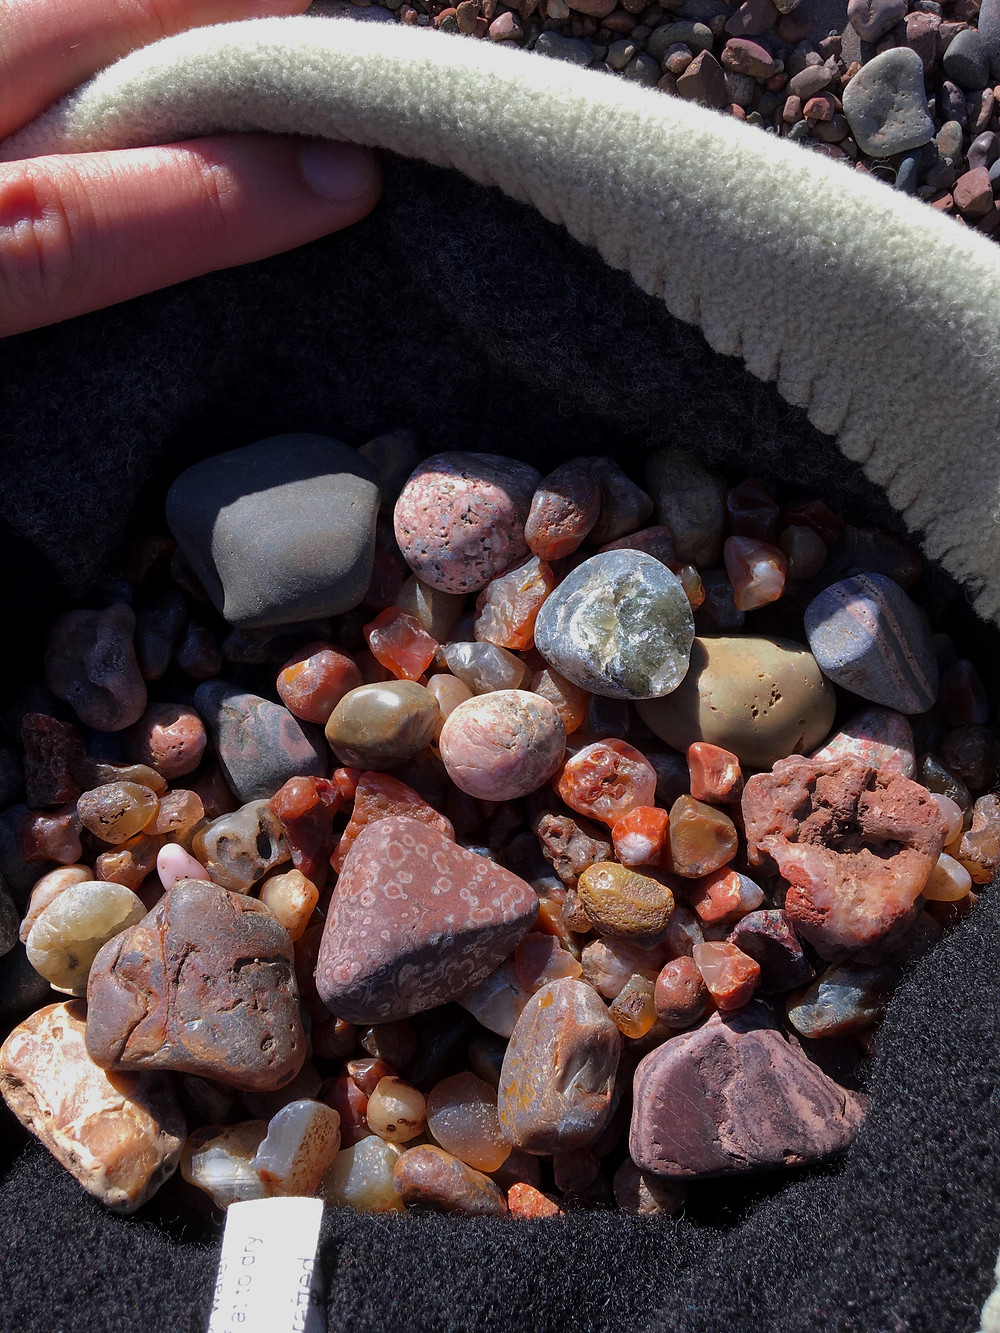 Figure 3: Assorted pea agates, jaspers, and Thomsonite from Lake Superior area.